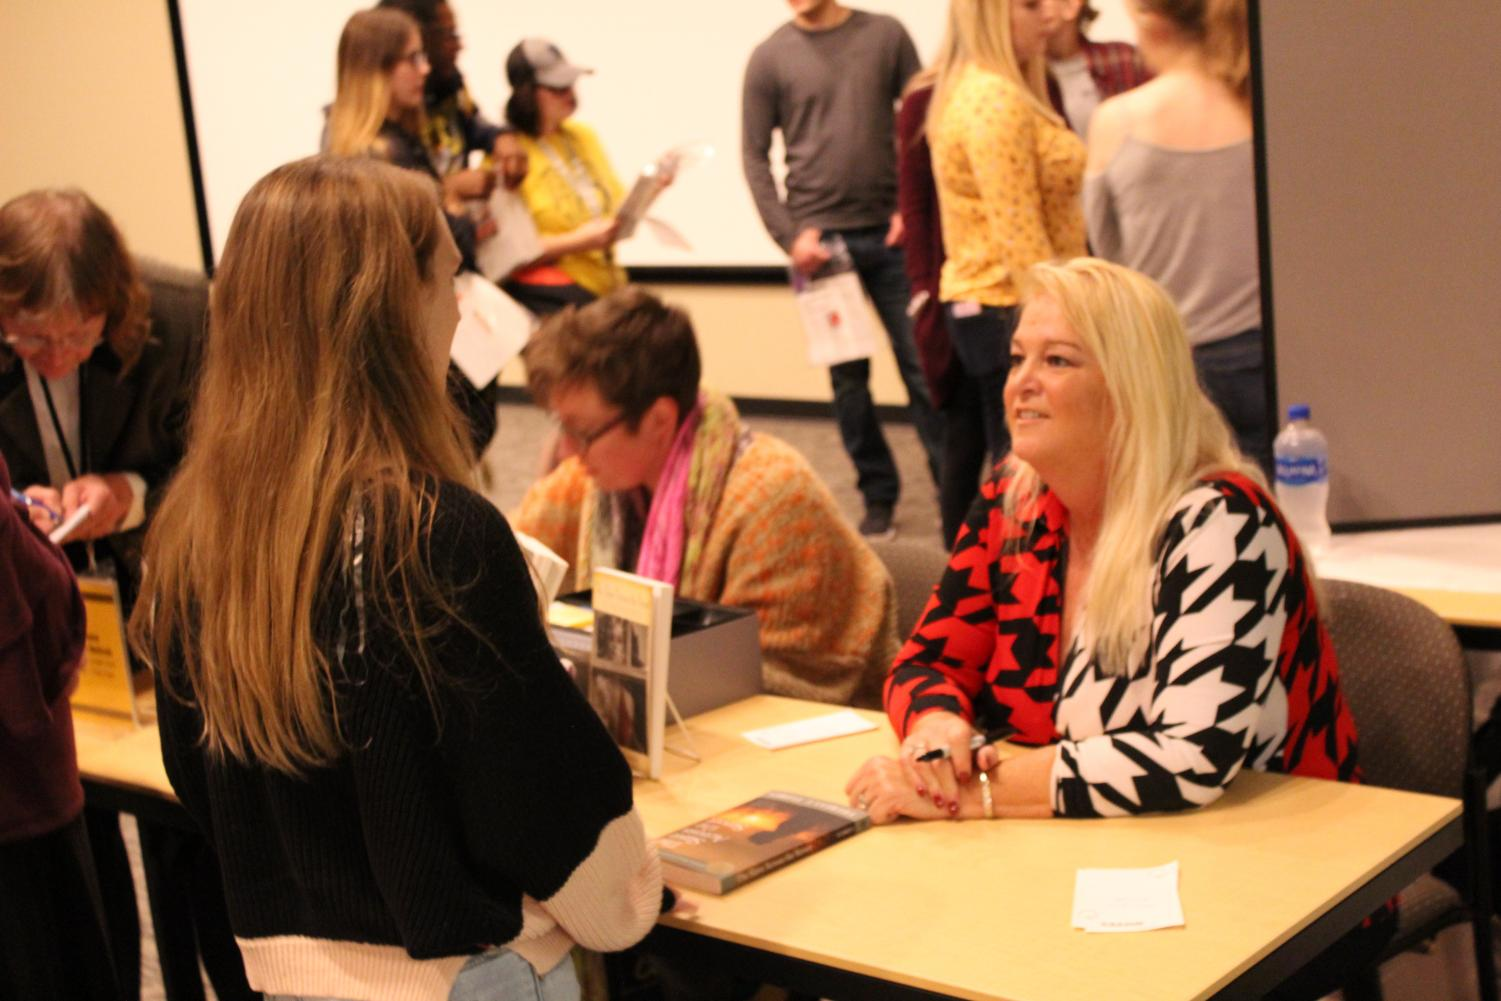 Theresa Flores, a survivor of sex trafficking, speaks with students in Reeve Memorial Union.